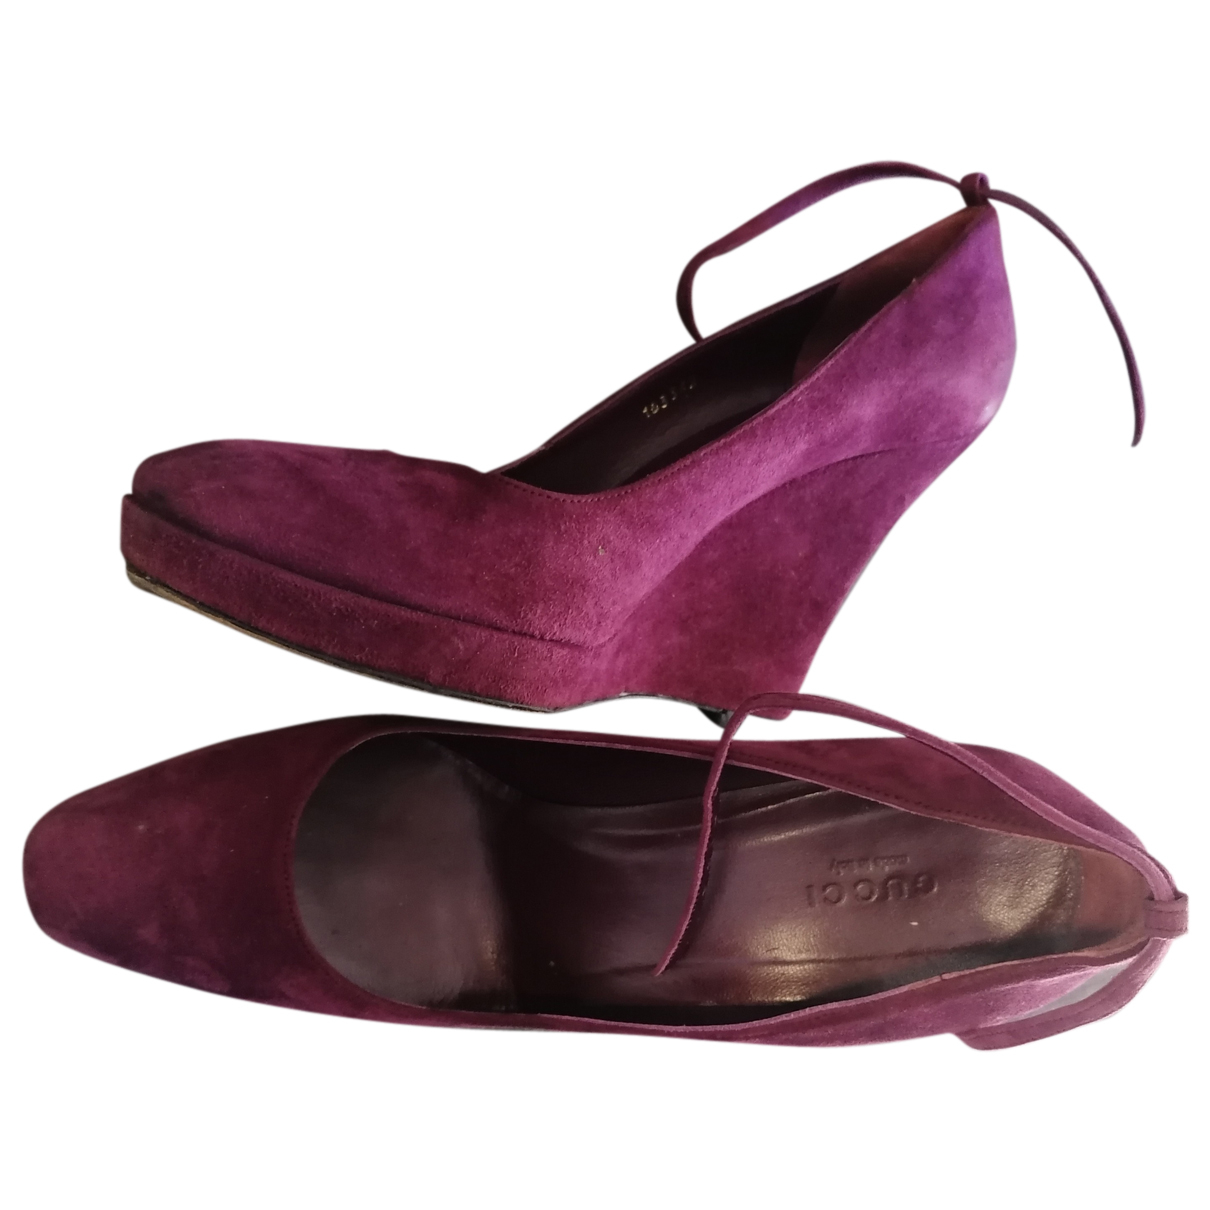 Gucci N Purple Suede Heels for Women 38 IT